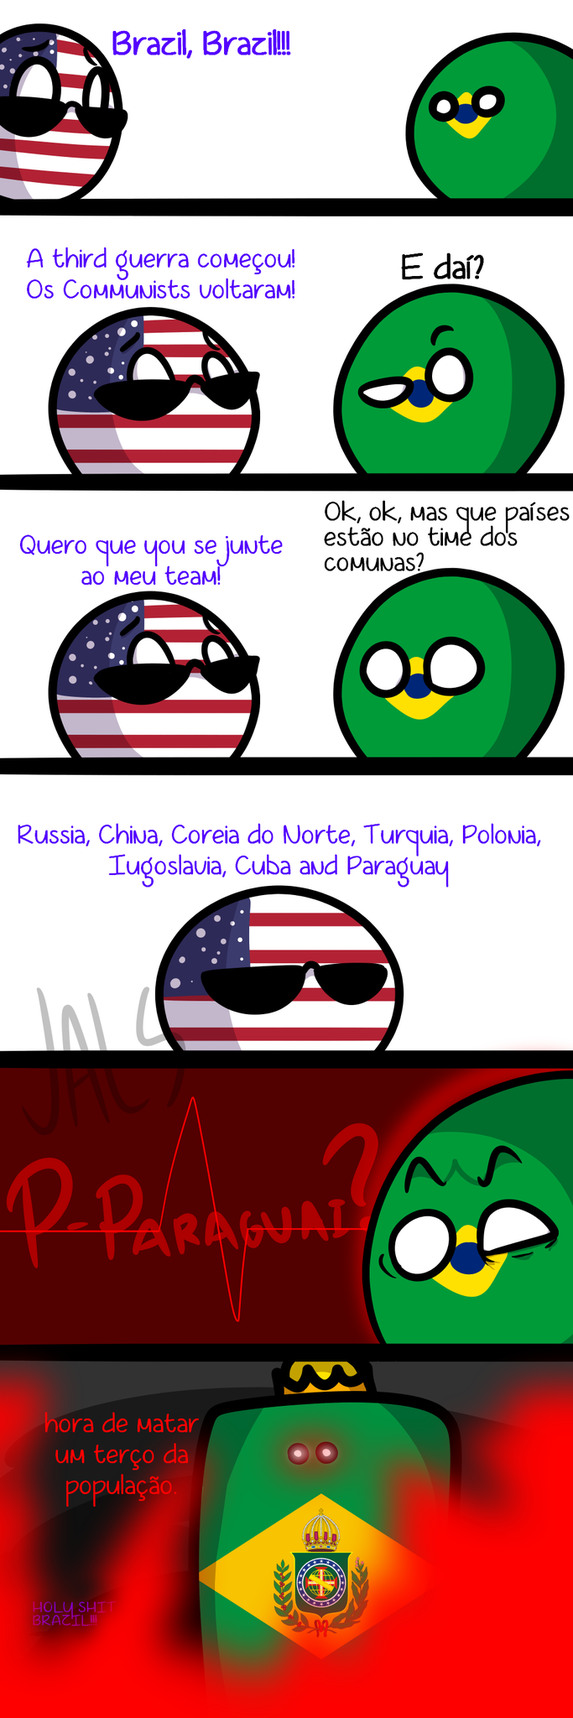 Brazil S Economy Is Better Than Ours Polandball Know Your Meme